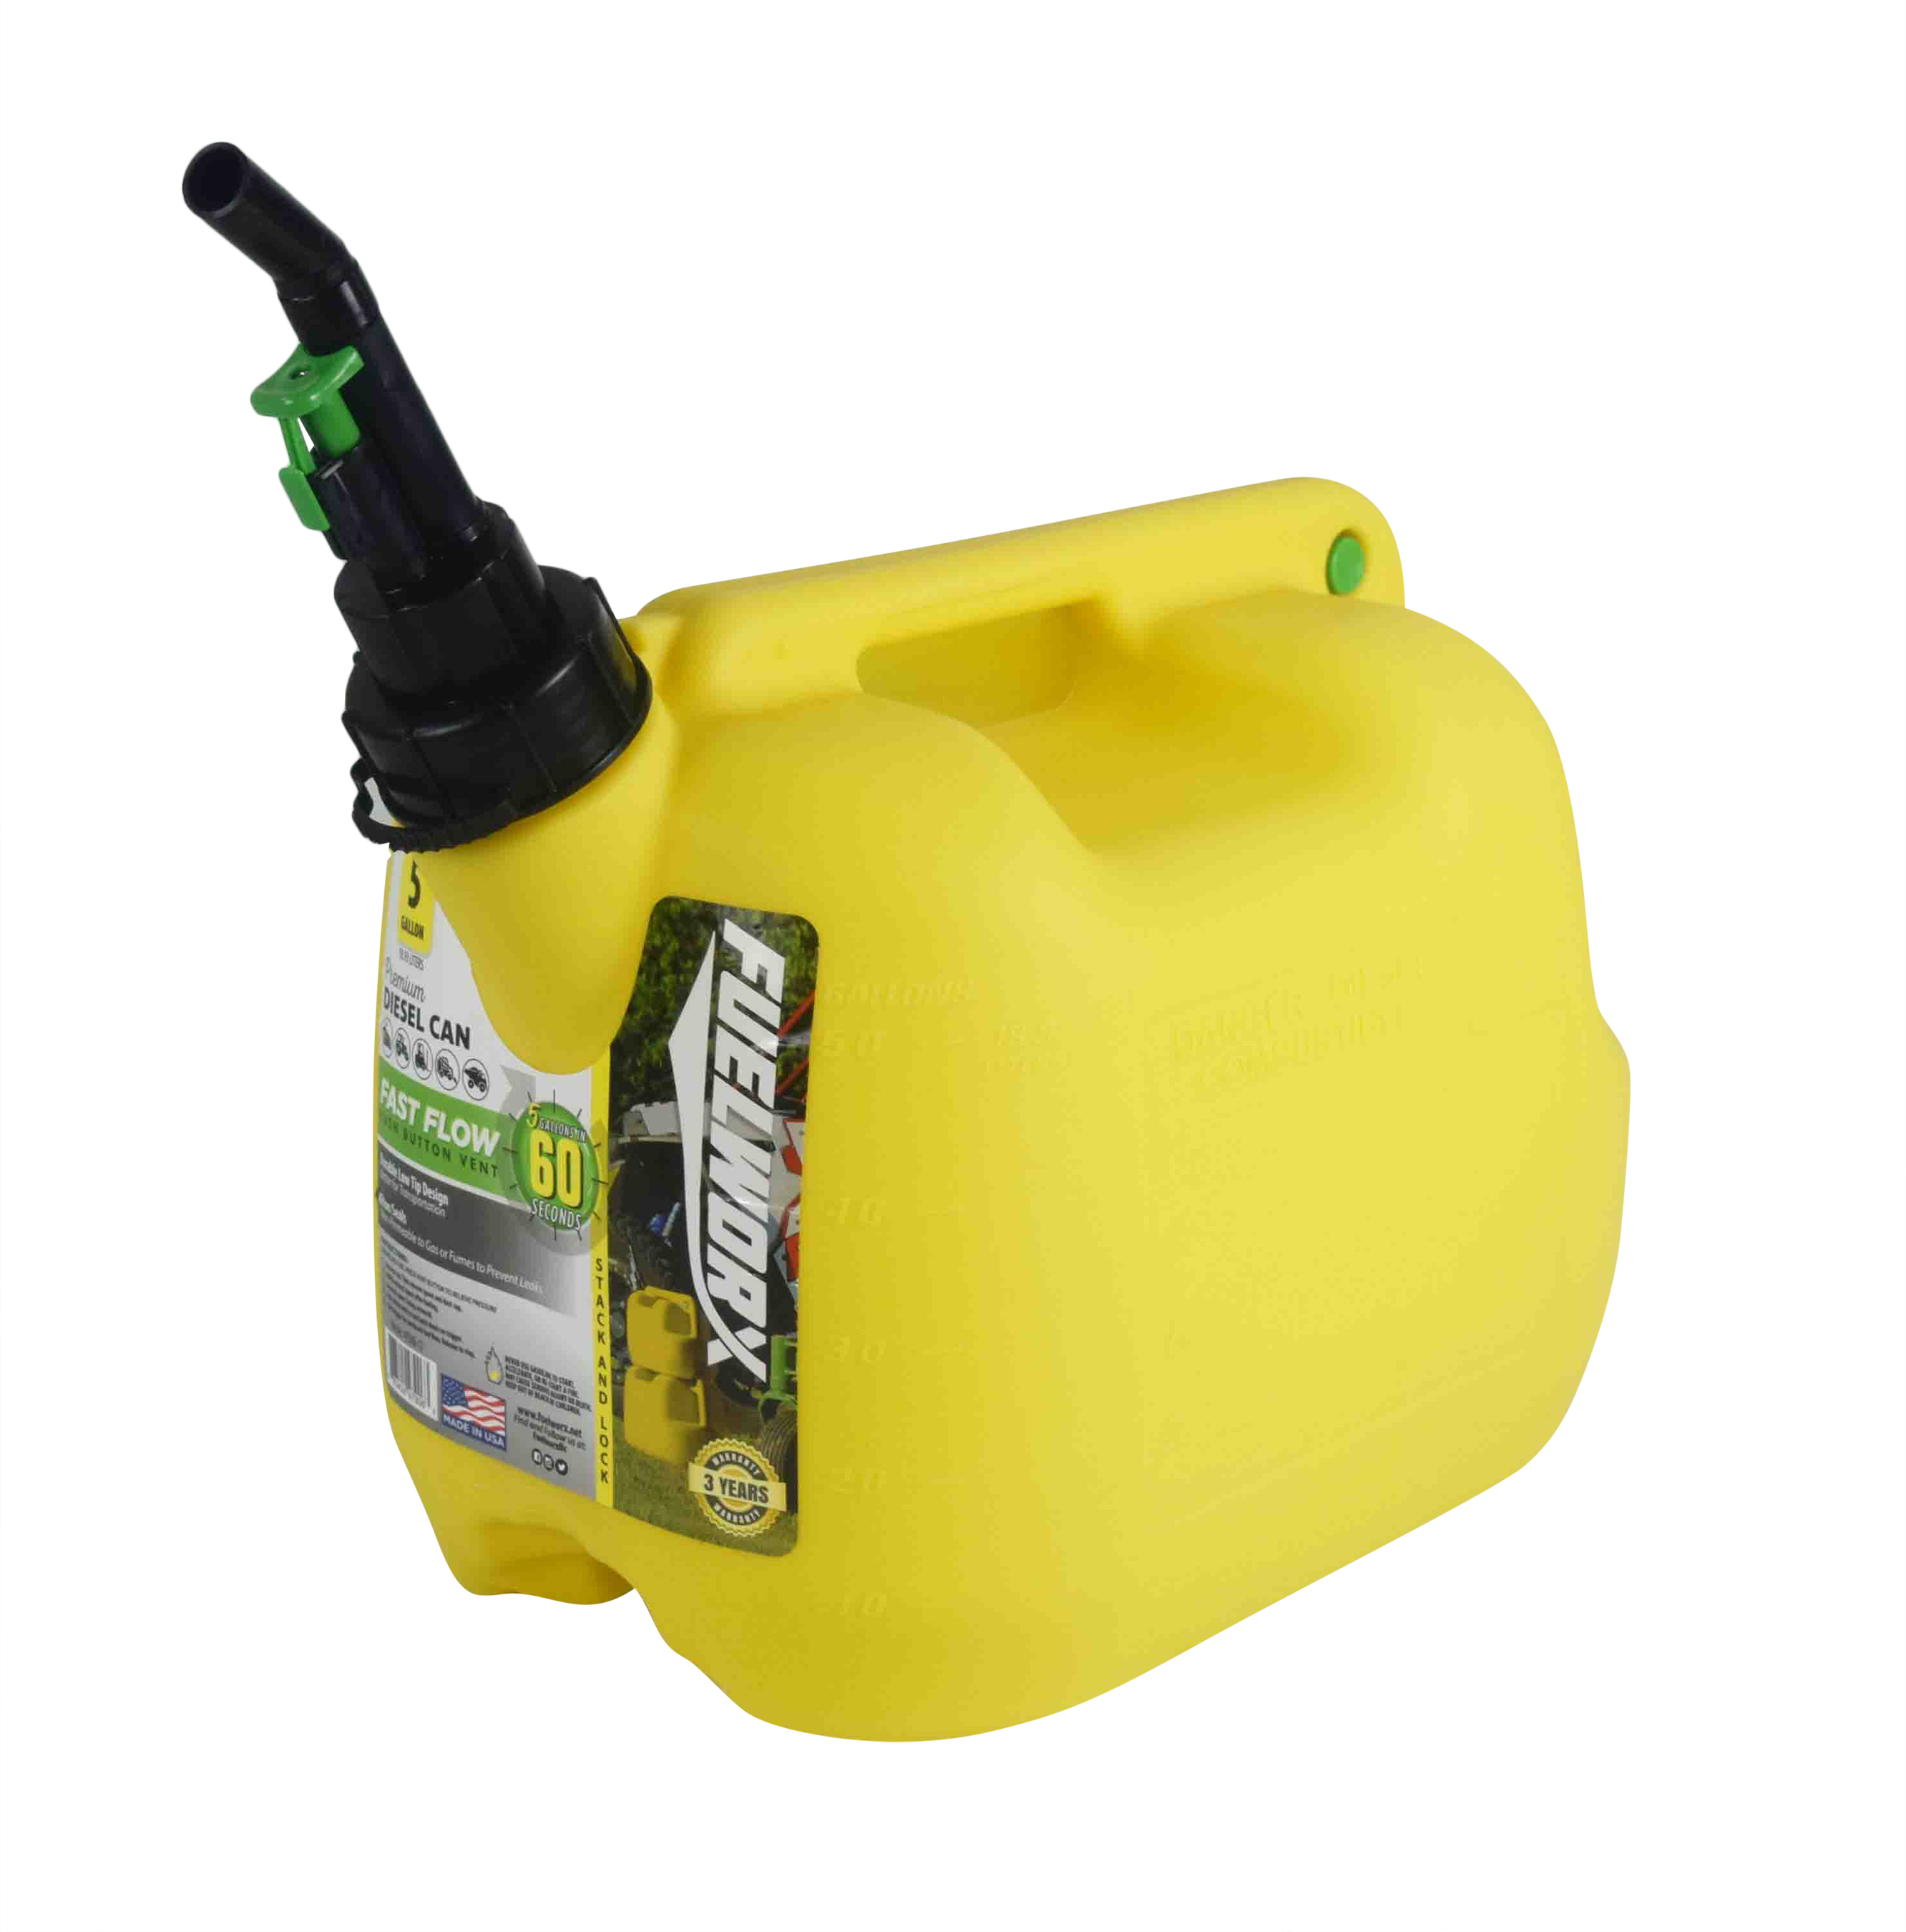 Fuelworx-Yellow-5-Gallon-Stackable-Fast-Pour-Diesel-Fuel-Cans-CARB-Compliant-Made-in-The-USA-5-Gallon-Diesel-Cans-2-Pack-image-4